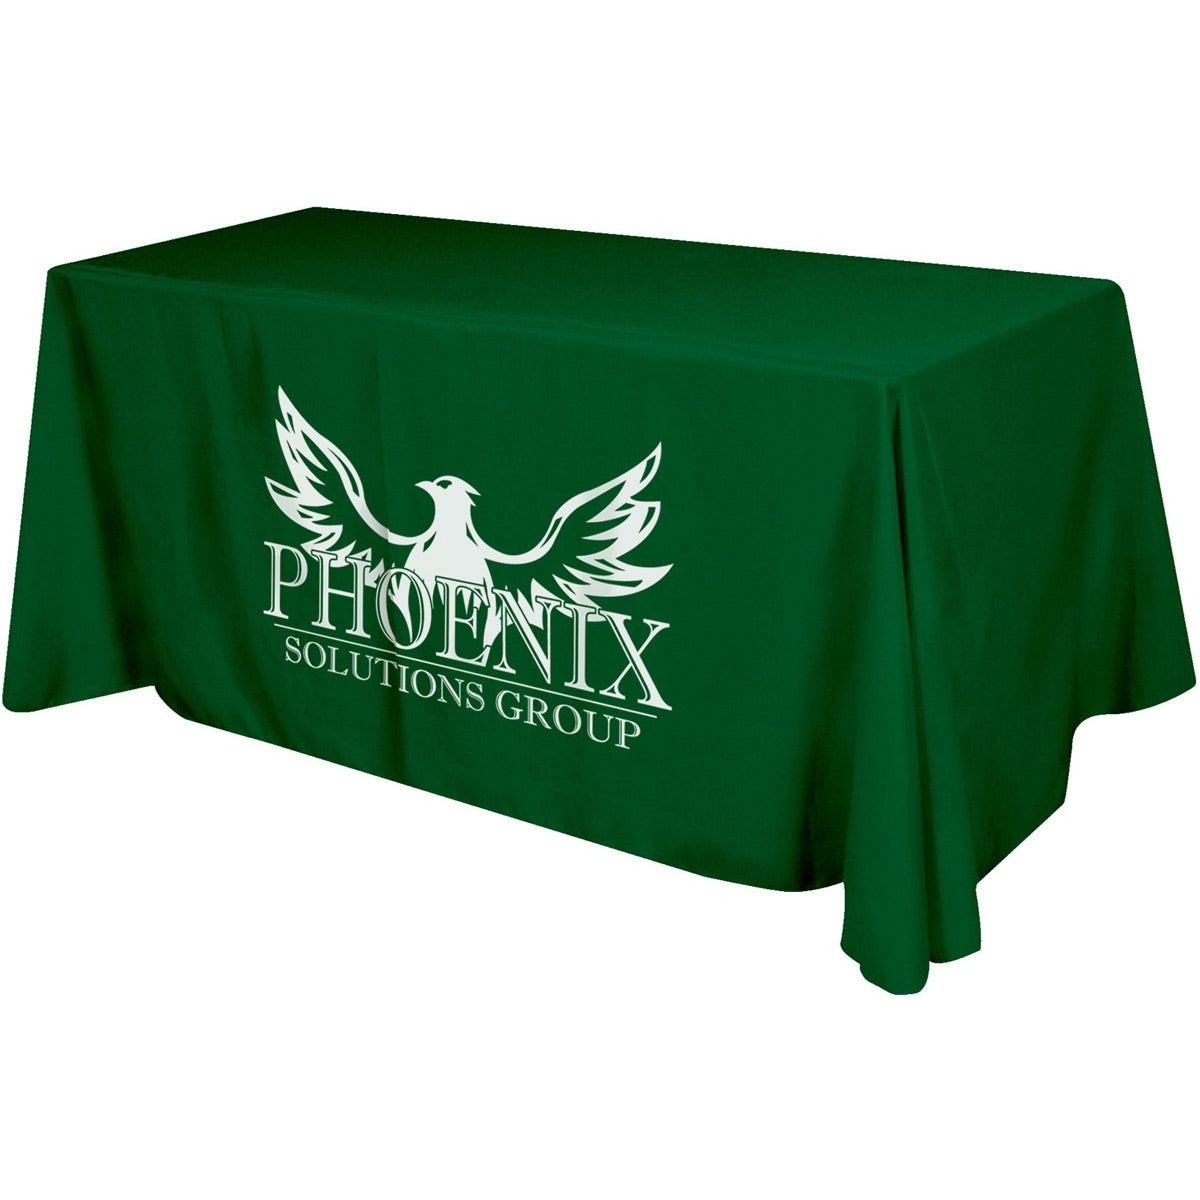 Three-sided Table Cover Fits 6 Foot Standard Table